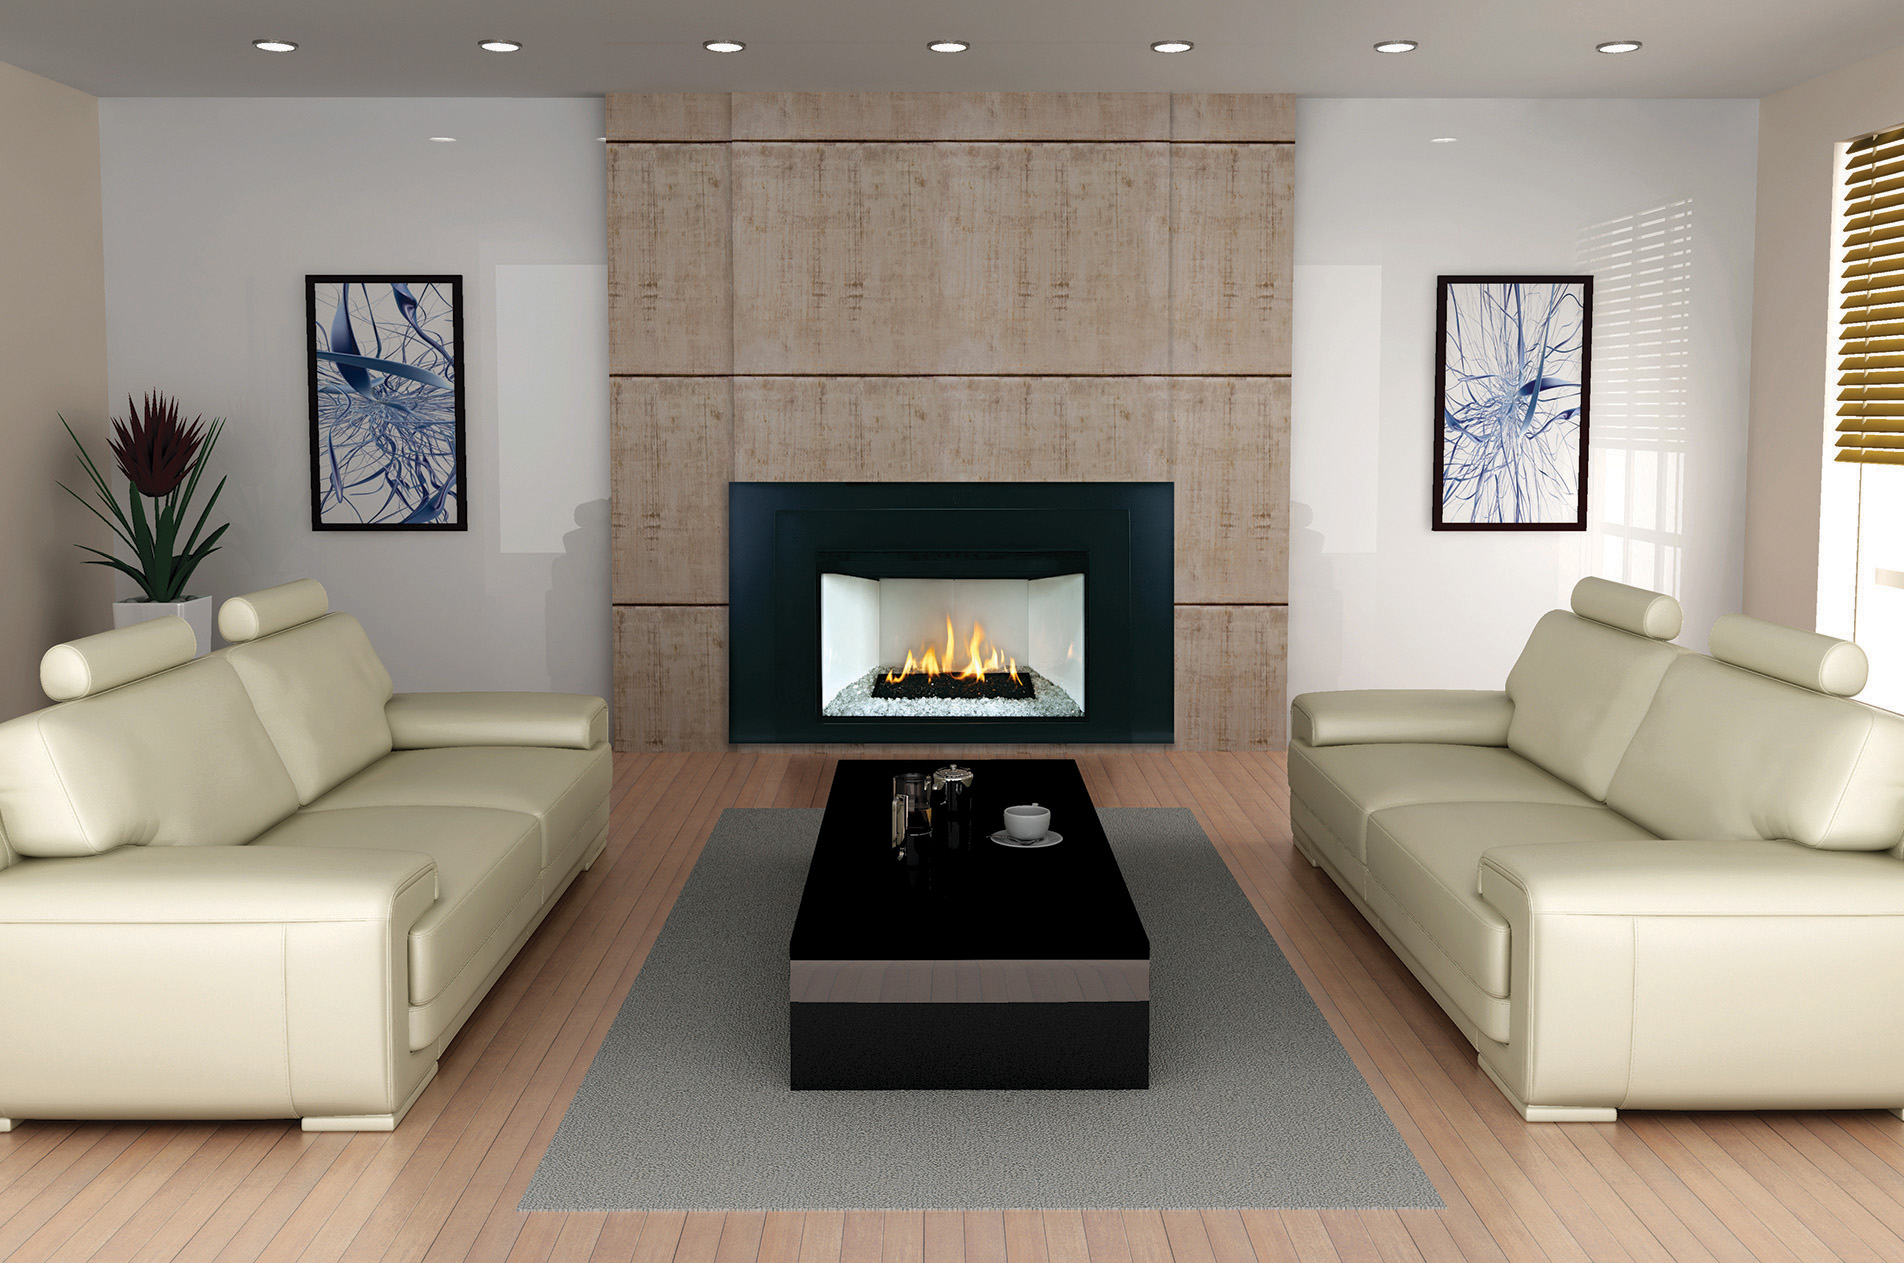 napoleon modern gas page acsent fireplaces ascent embers direct vent empire fireplace view sb categories multi